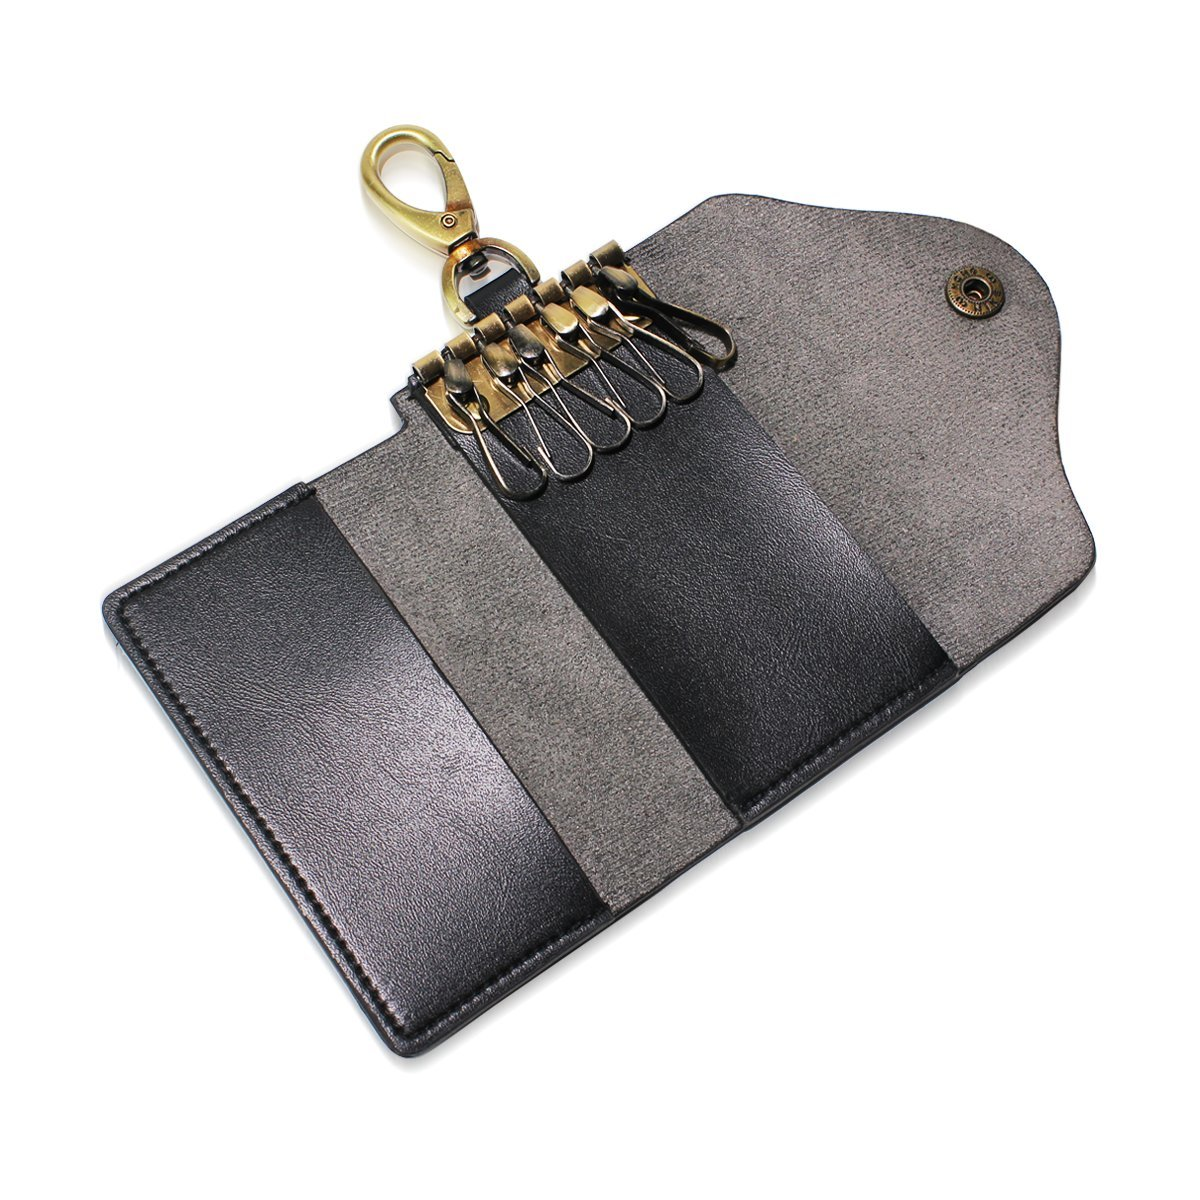 DEYYA Ethnic Elephant Leather Key Case Wallets Unisex Keychain Key Holder with 6 Hooks Snap Closure